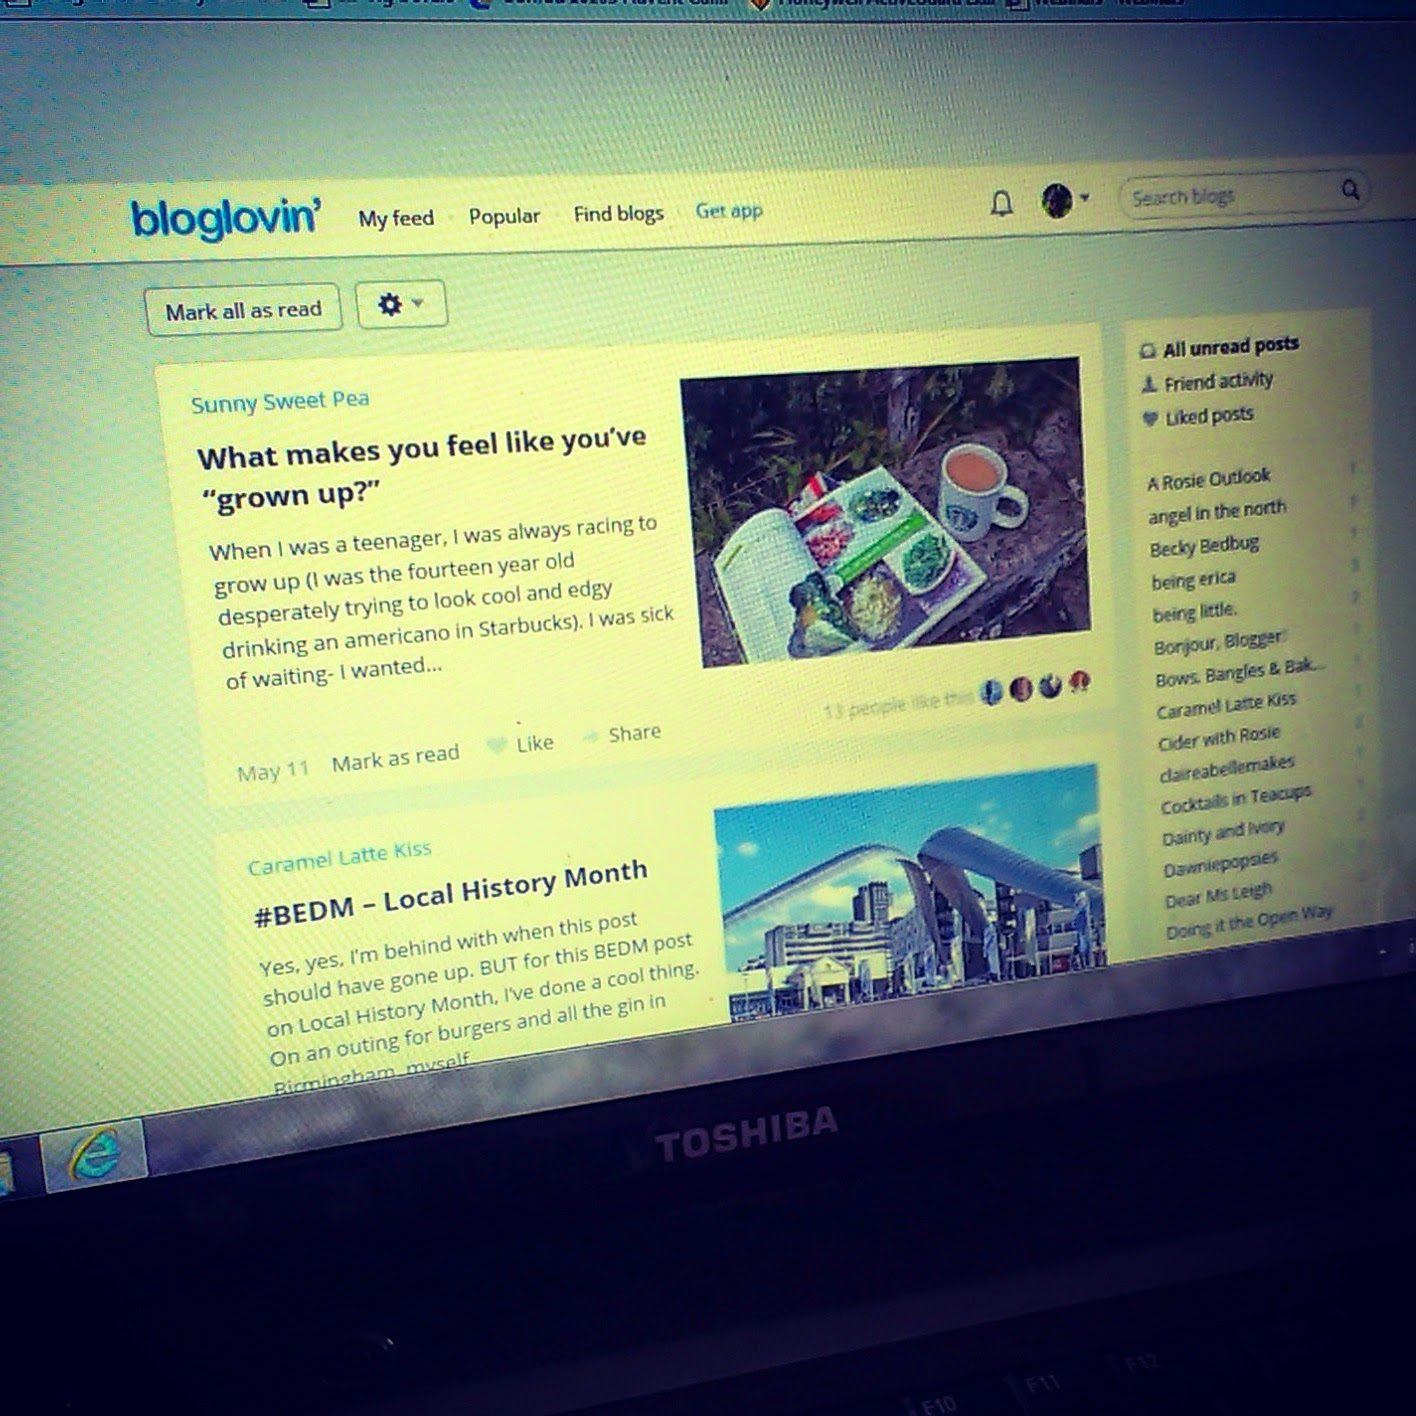 Bloglovin news feed